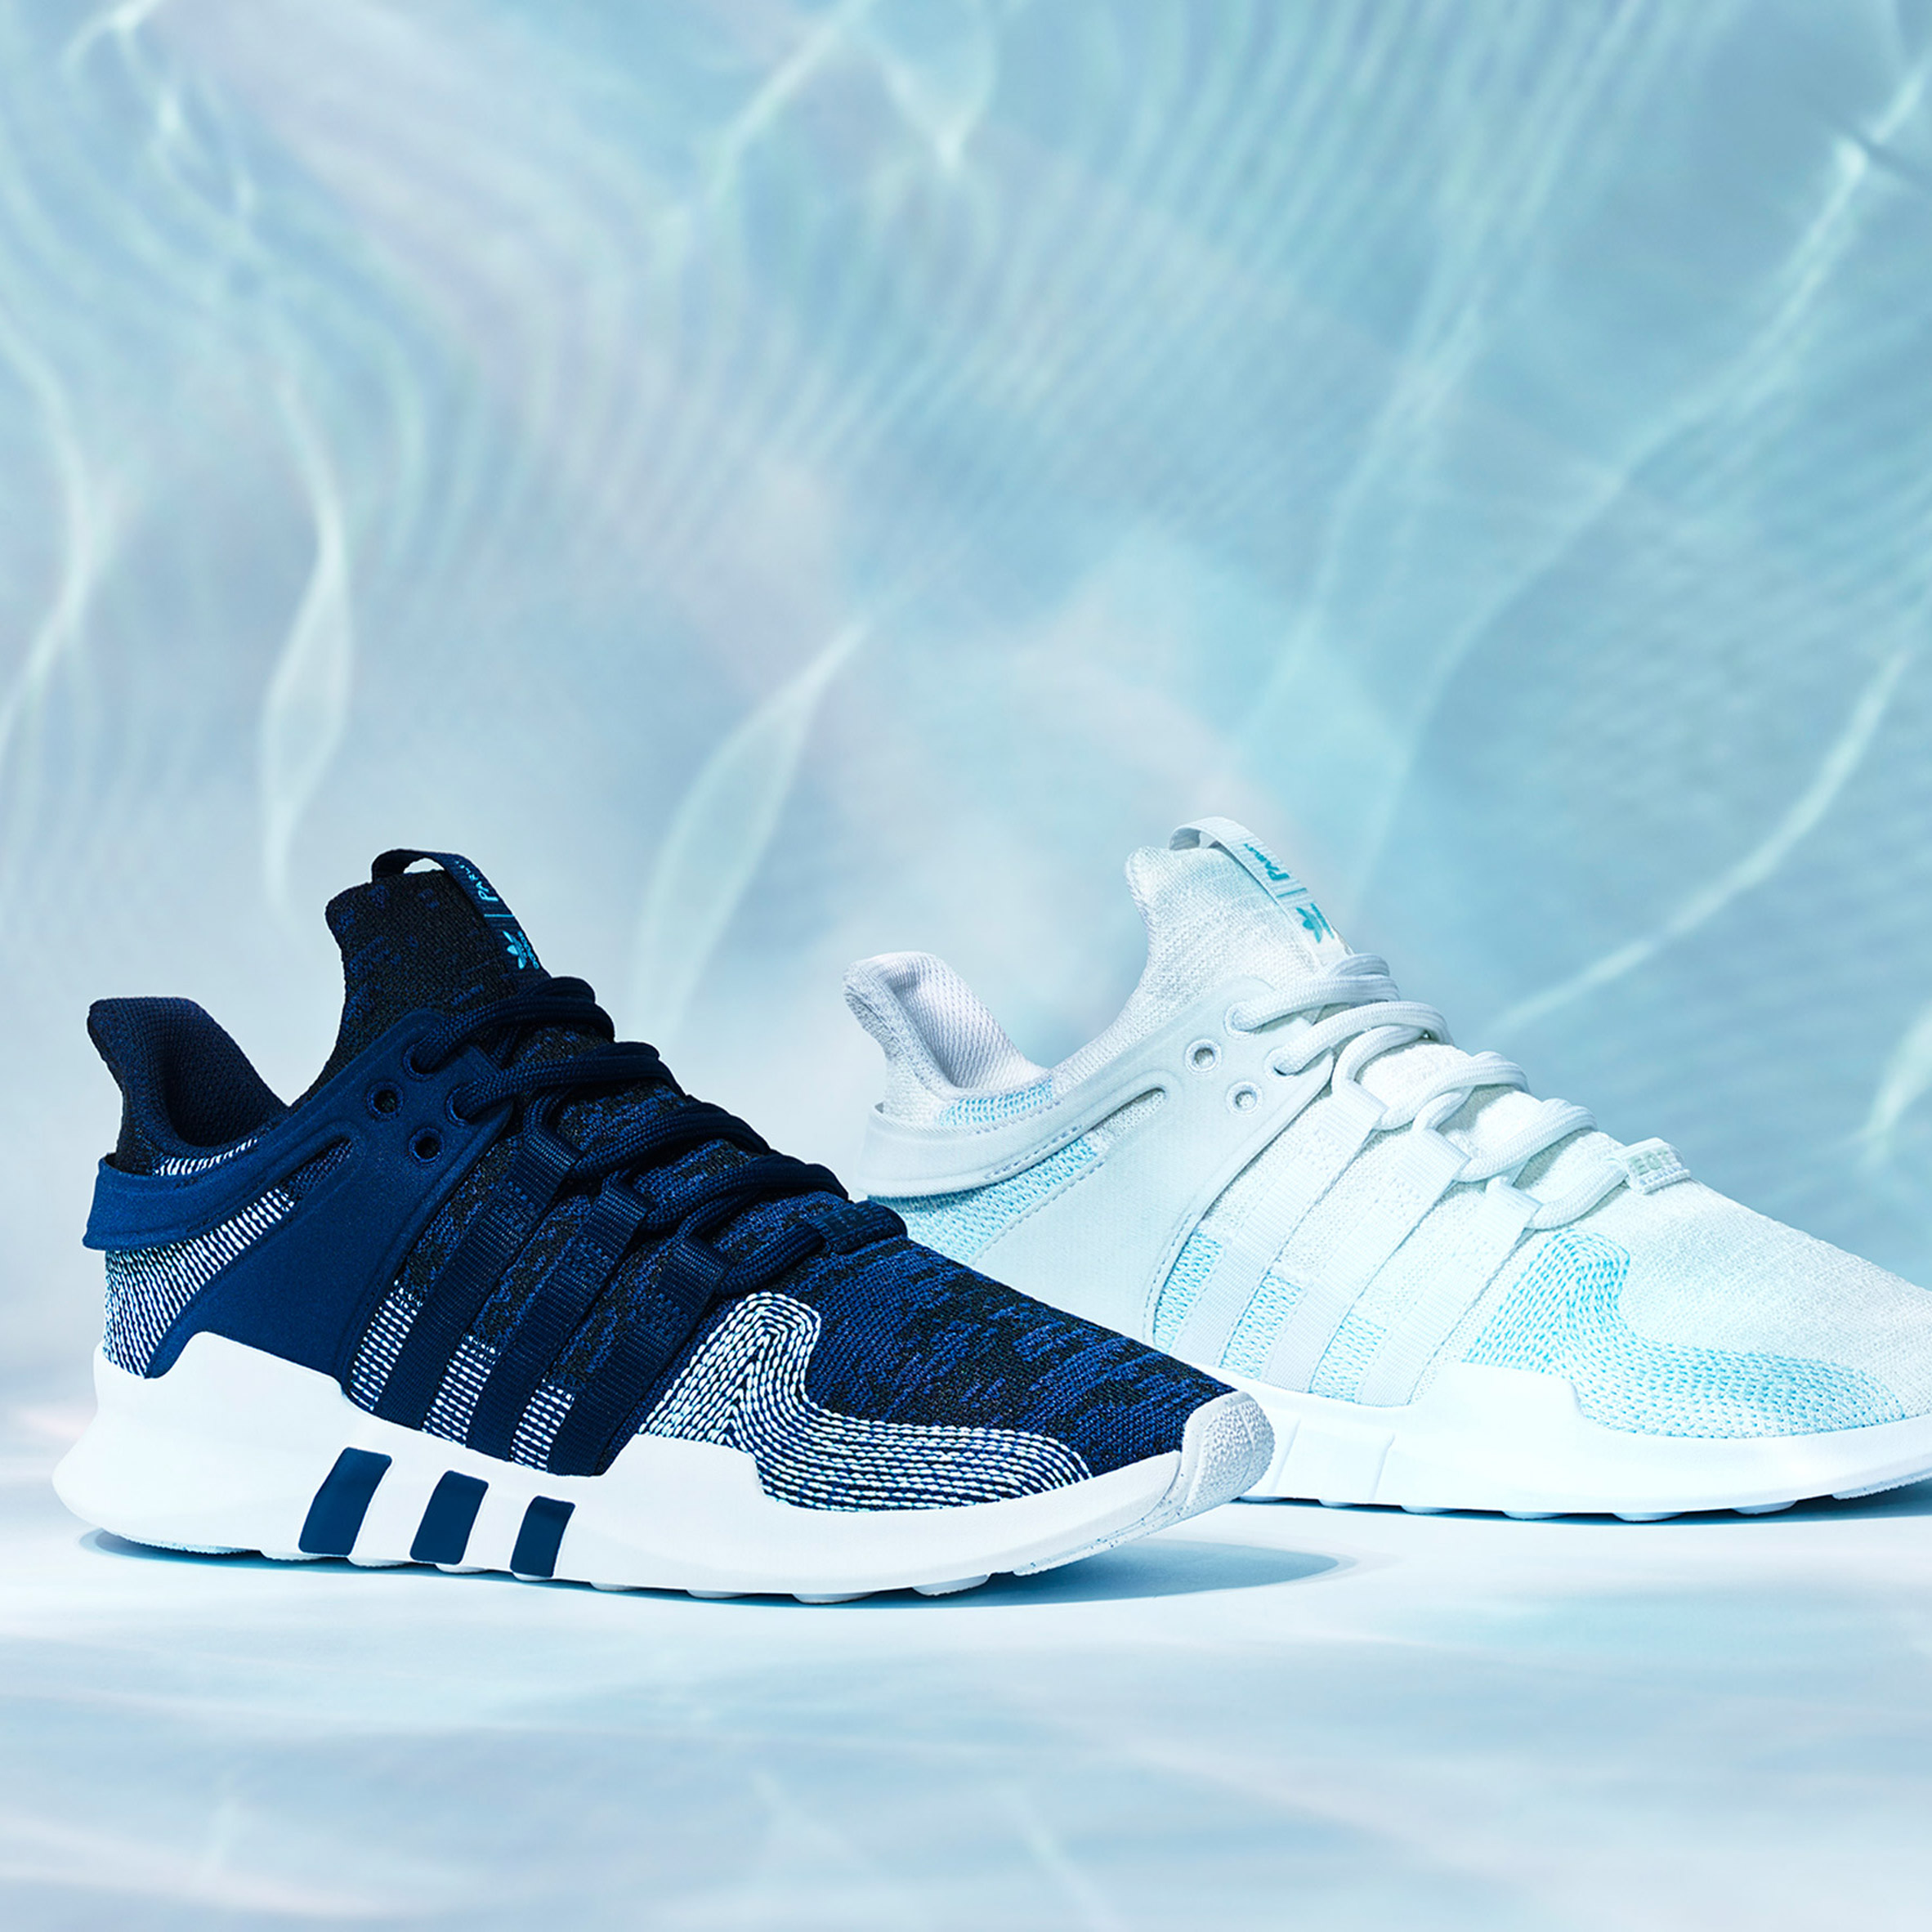 Adidas uses Parley ocean plastic to